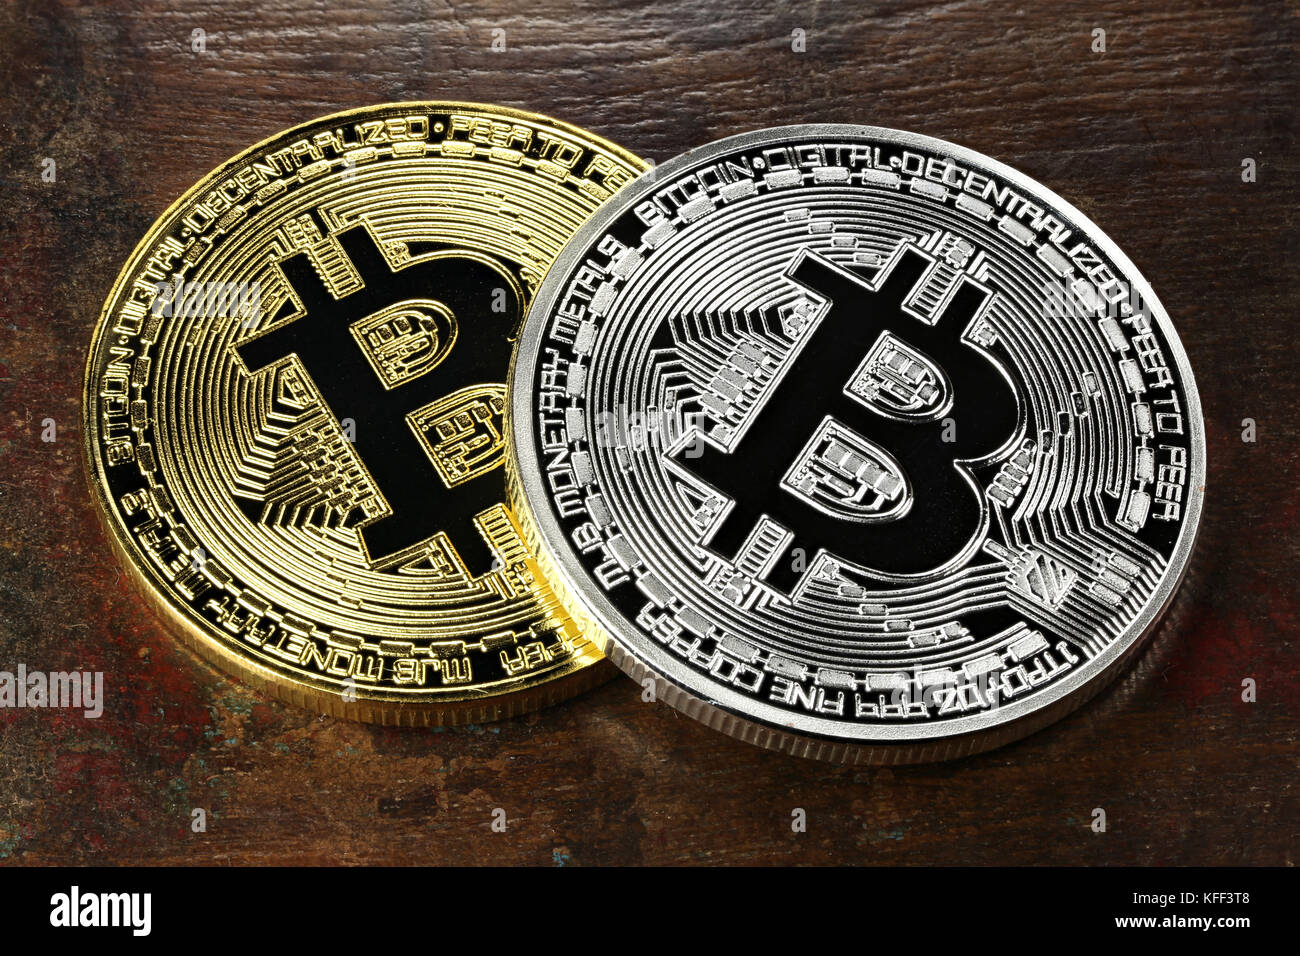 golden and silver bitcoins on wooden background Stock Photo